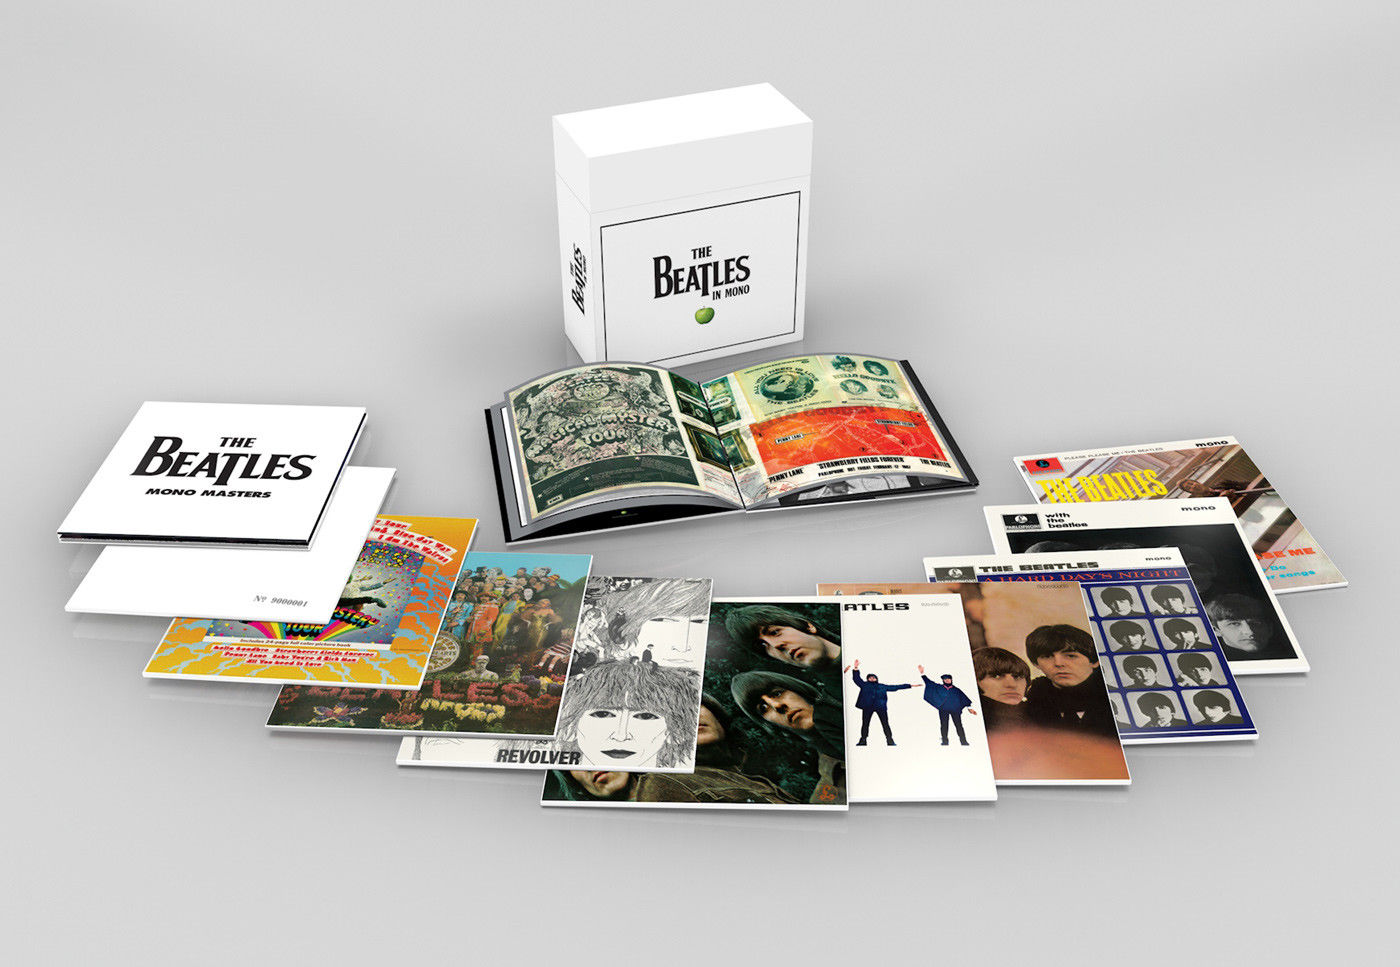 THE BEATLES MONO VINYL NEW BOX SET 14 180G LPs and BOOK, Mint in original box